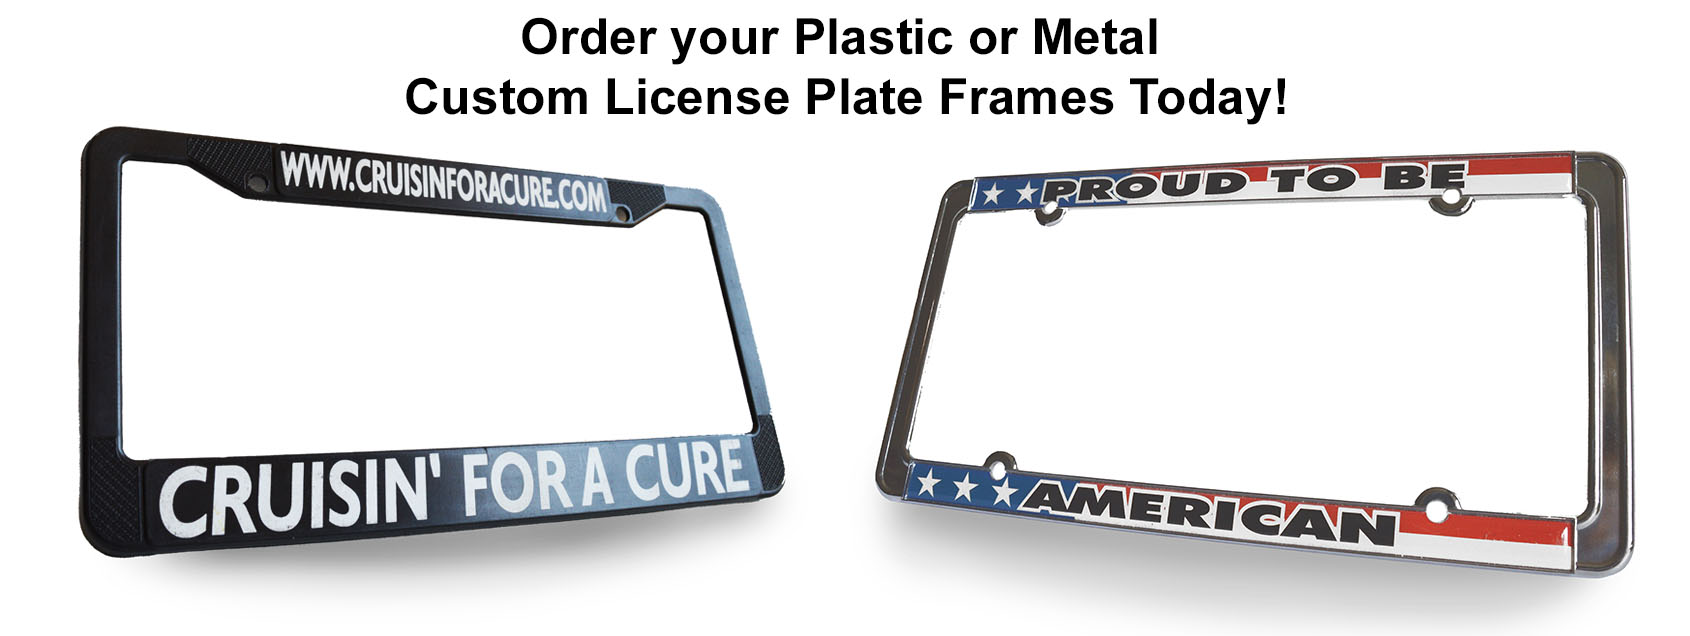 CUSTOM LICENSE PLATE FRAMES .NET